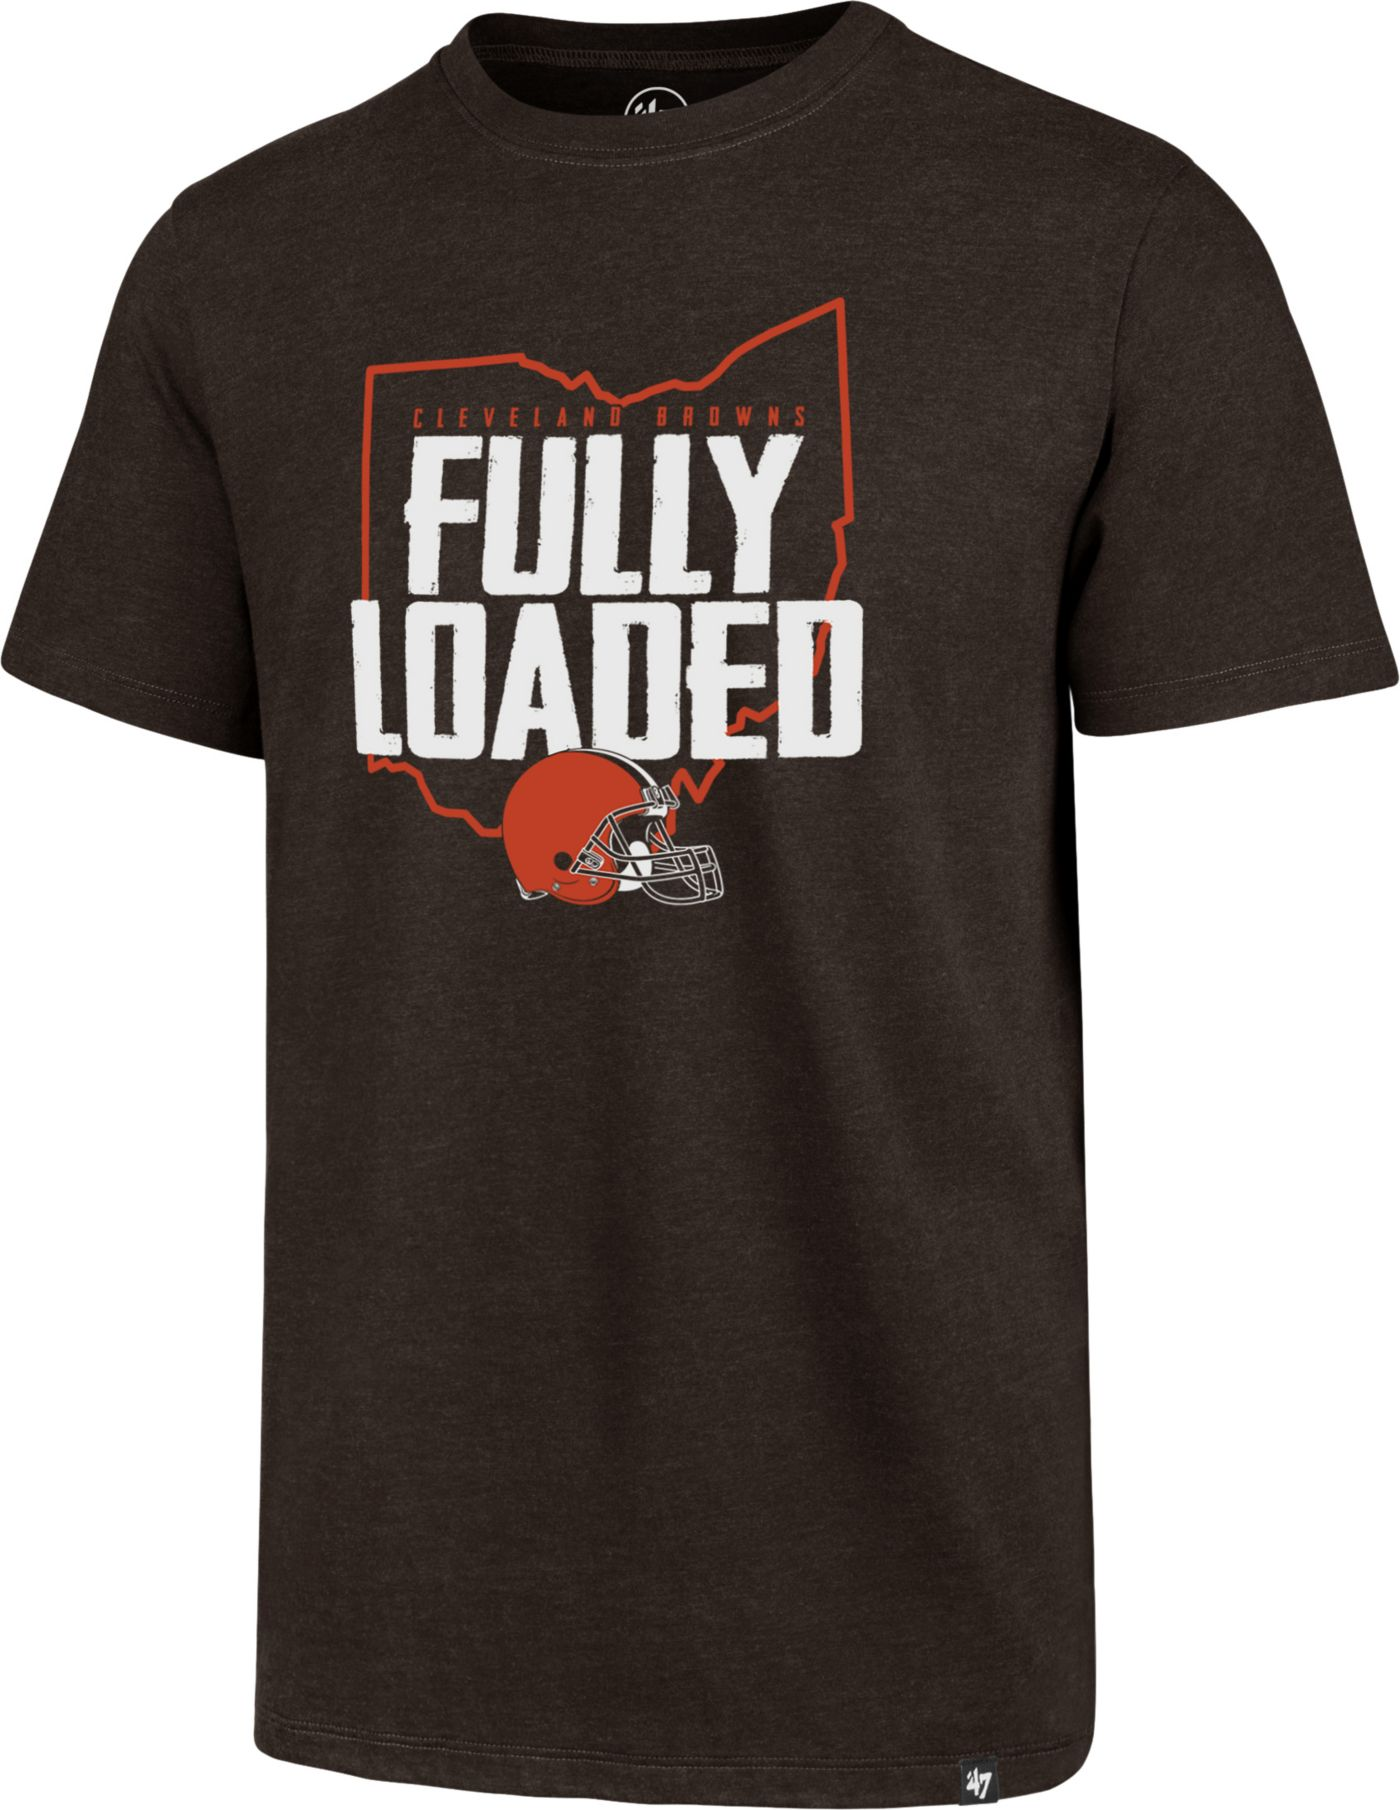 '47 Men's Cleveland Browns Fully Loaded Club Brown T-Shirt